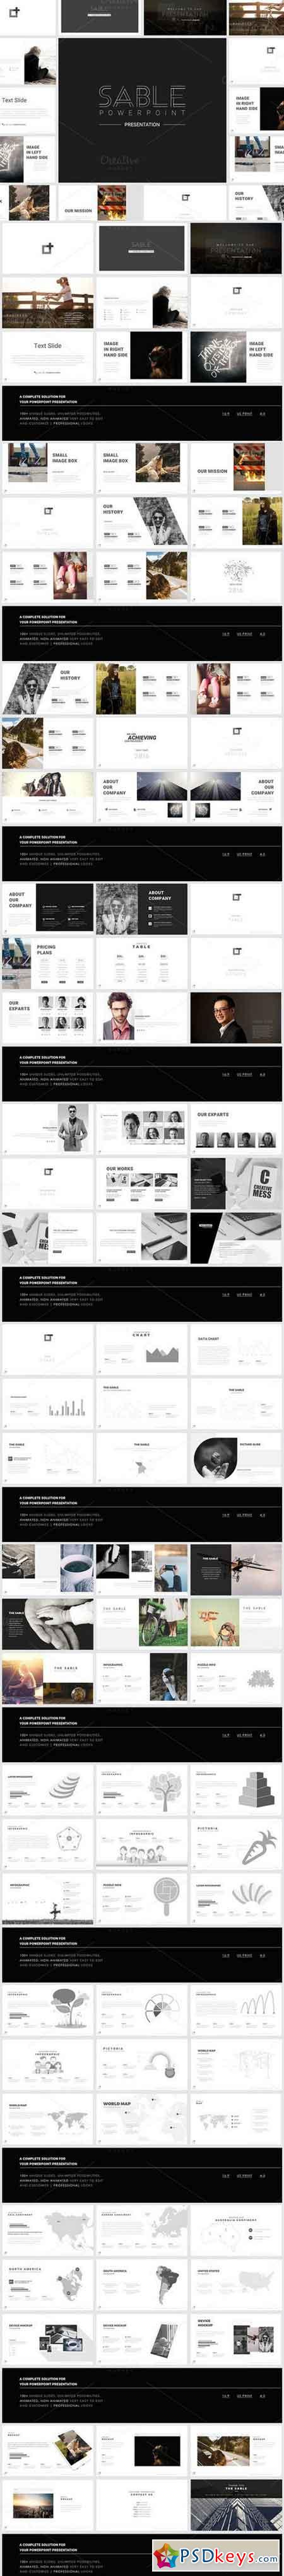 Sable Powerpoint Template 897253